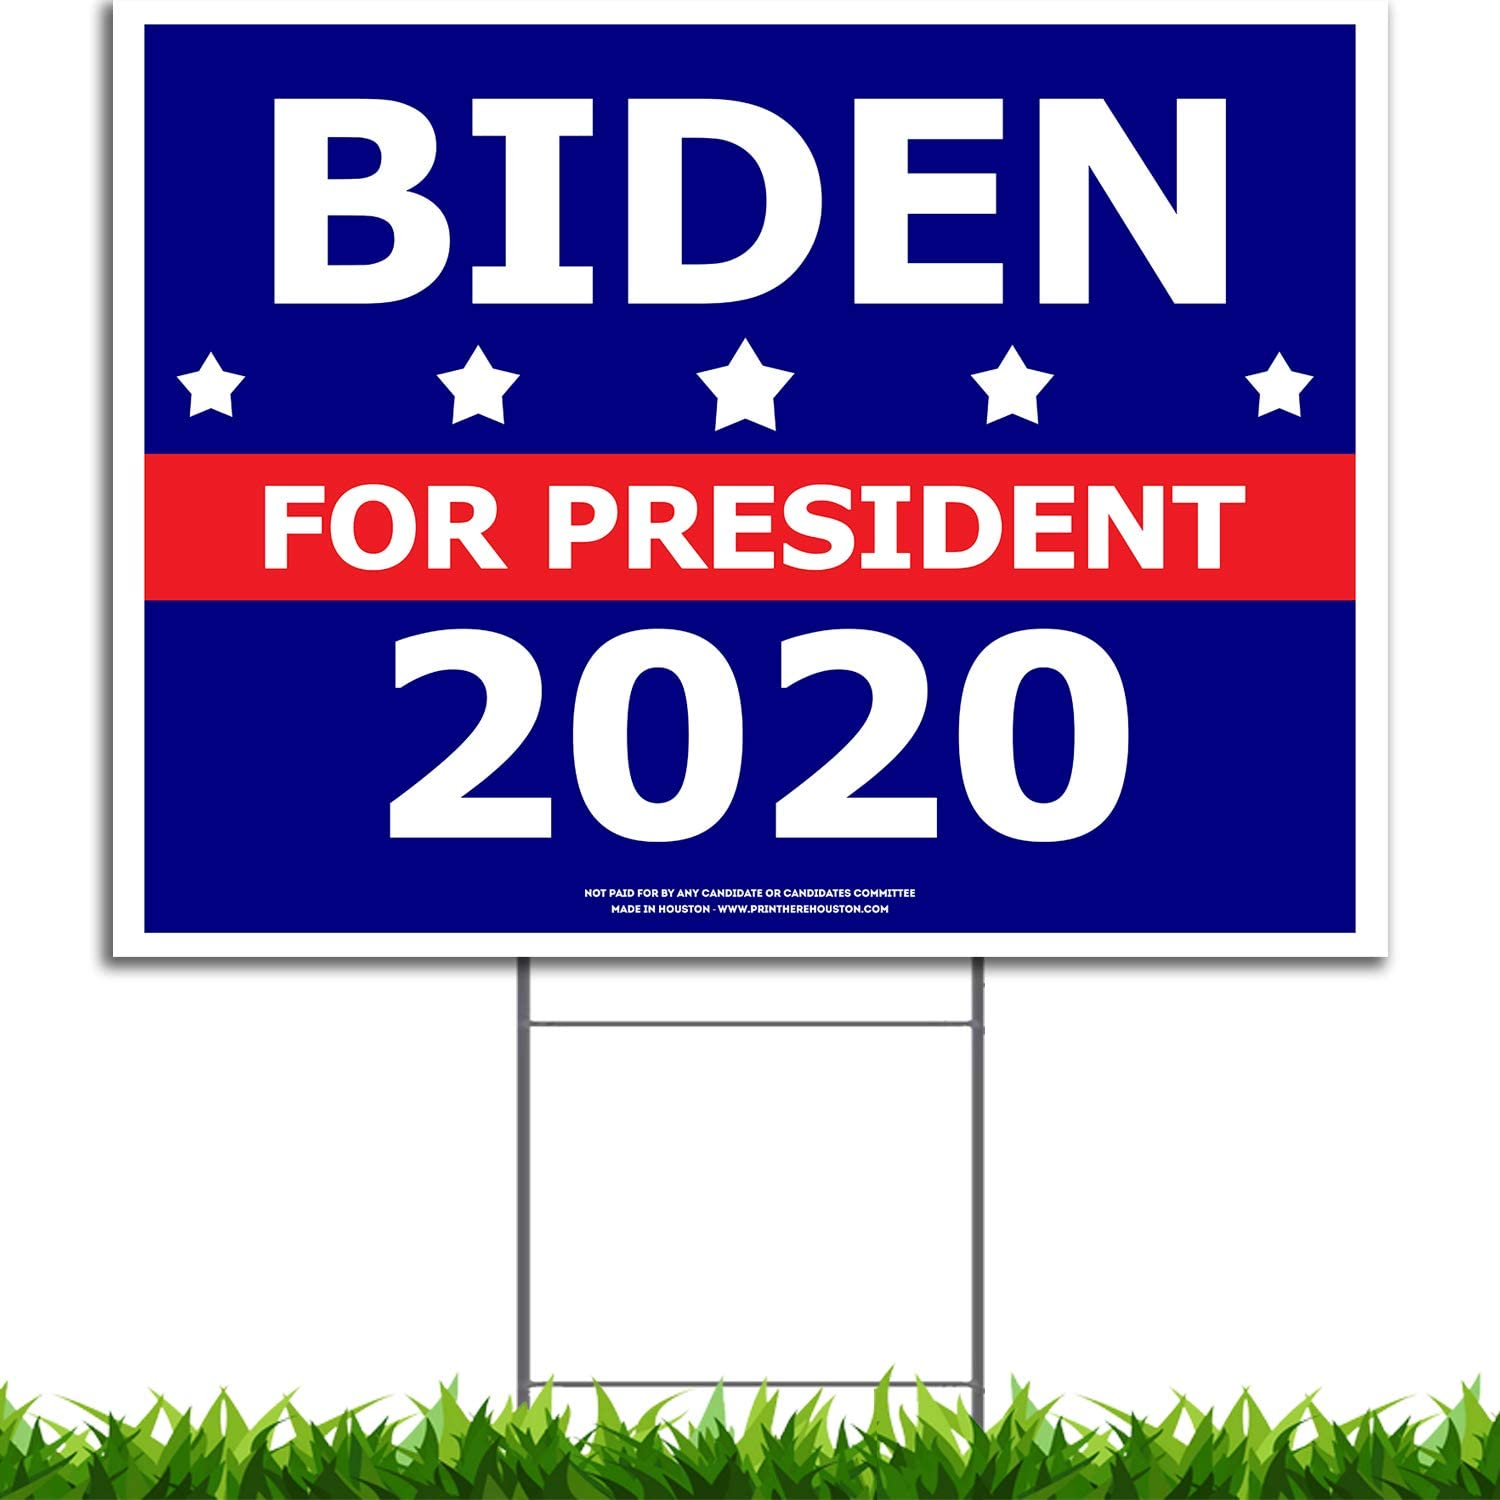 Amazon Com Vibe Ink Joe Biden For President 2020 Political Campaign Yard Sign Large 24x18 With Included Lawn H Stake Made In America Waterproof Front Back Garden Outdoor